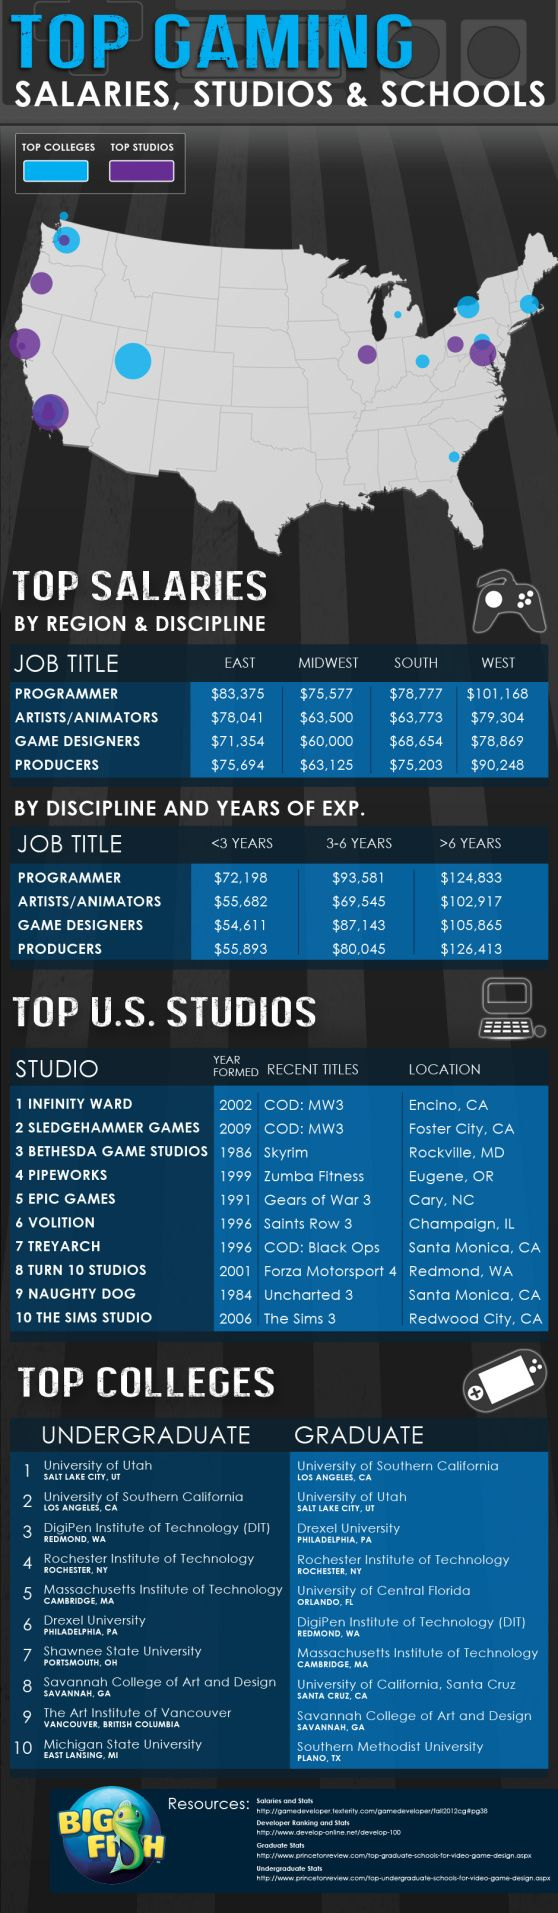 Infographic Top colleges and highest salaries in gaming